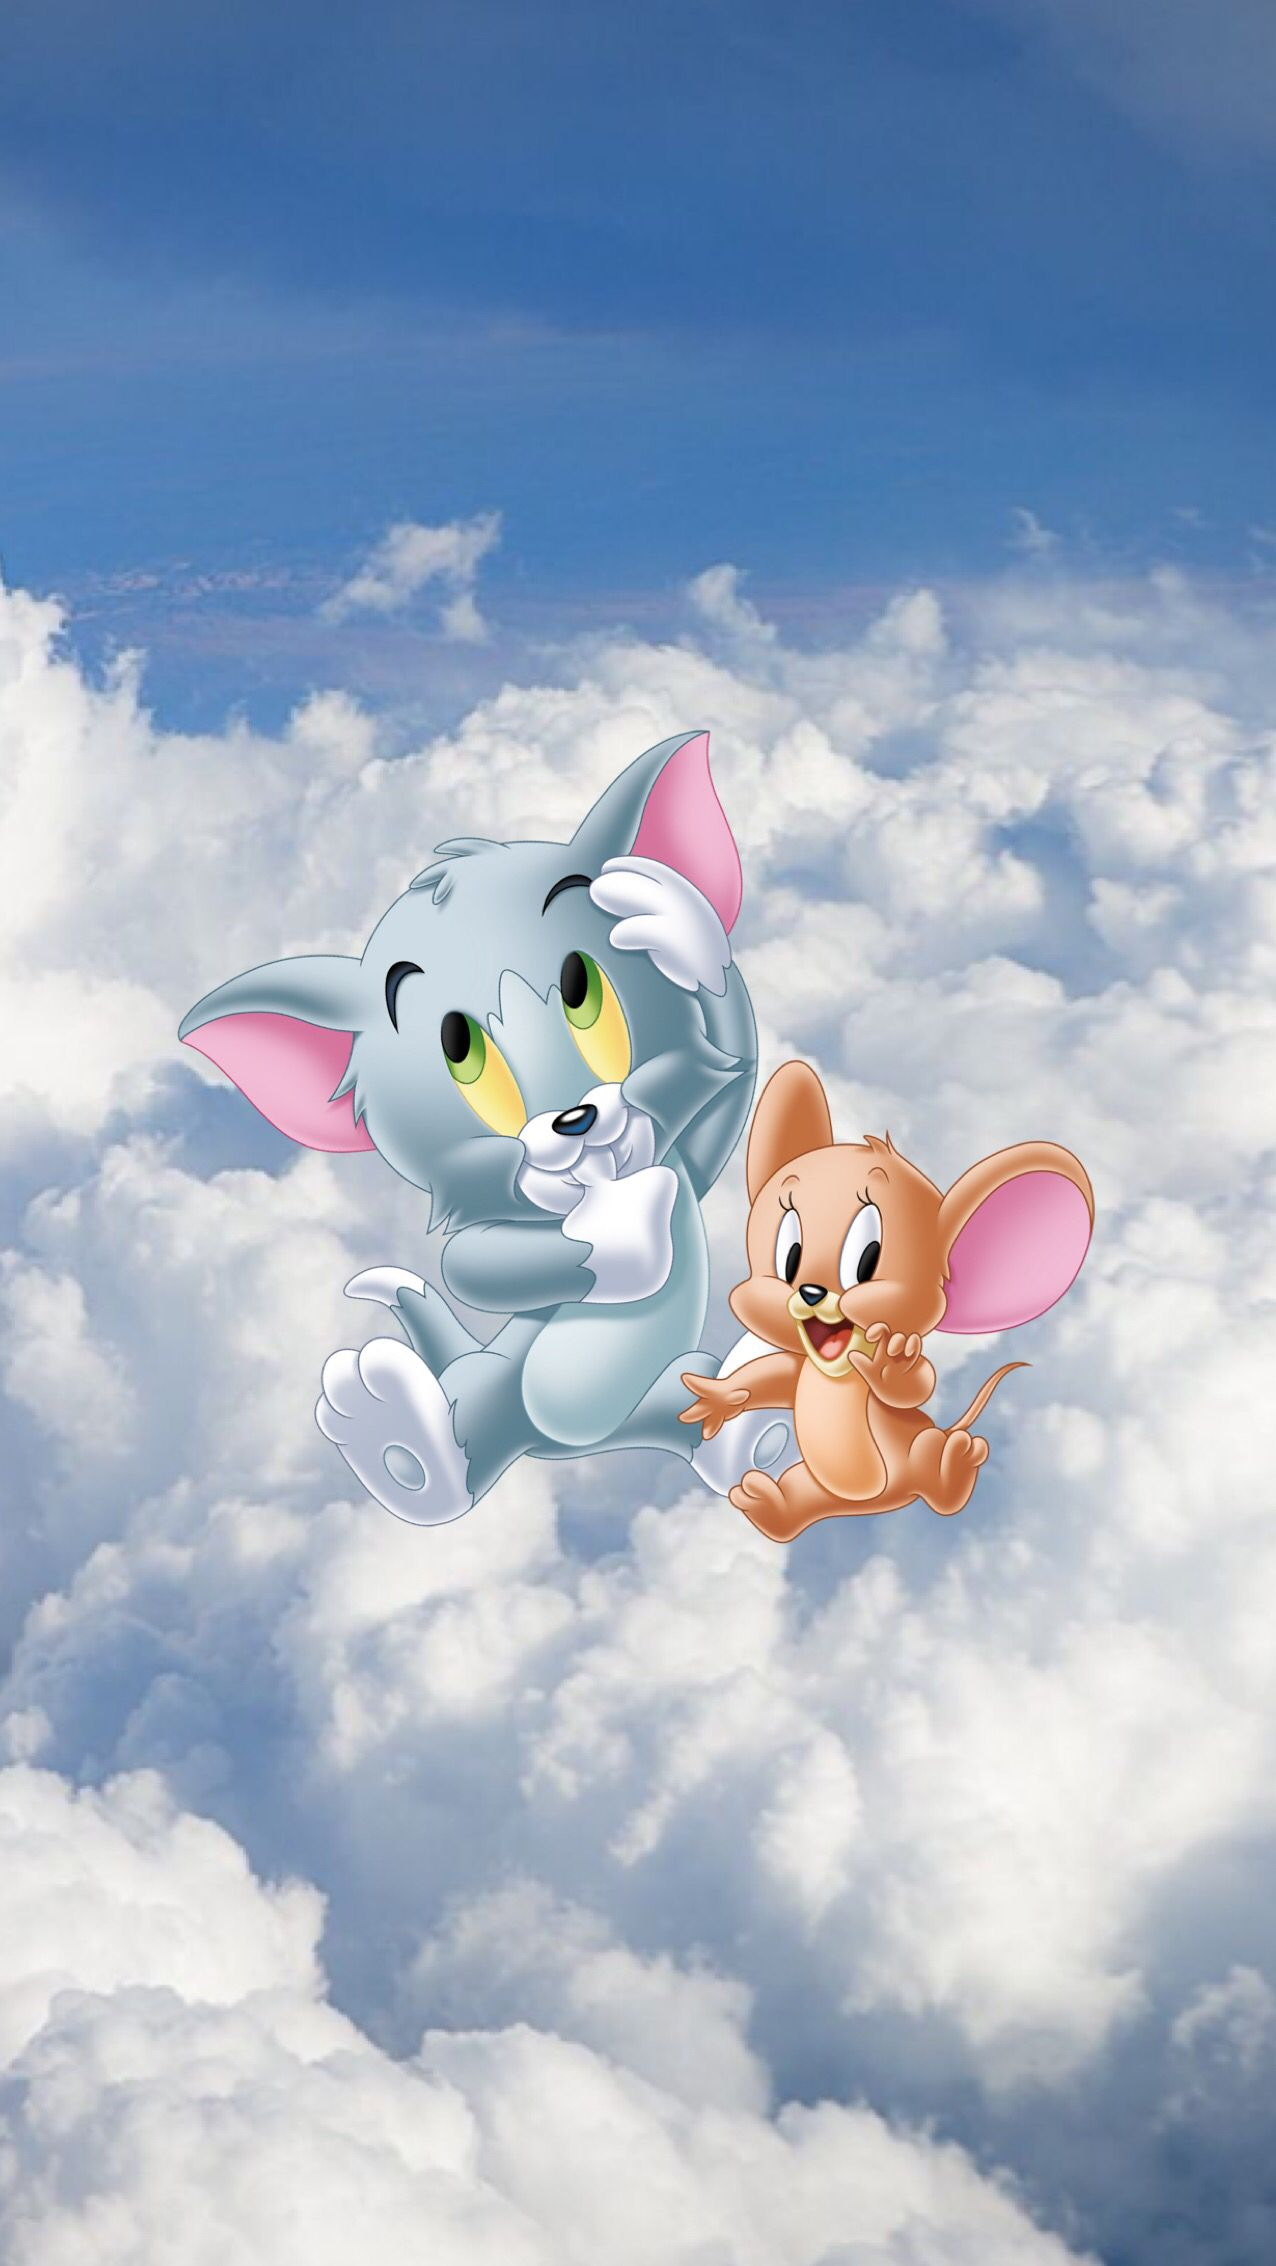 Tom Jerry In 2020 Cartoon Wallpaper Iphone Cute Cartoon Wallpapers Cute Disney Wallpaper